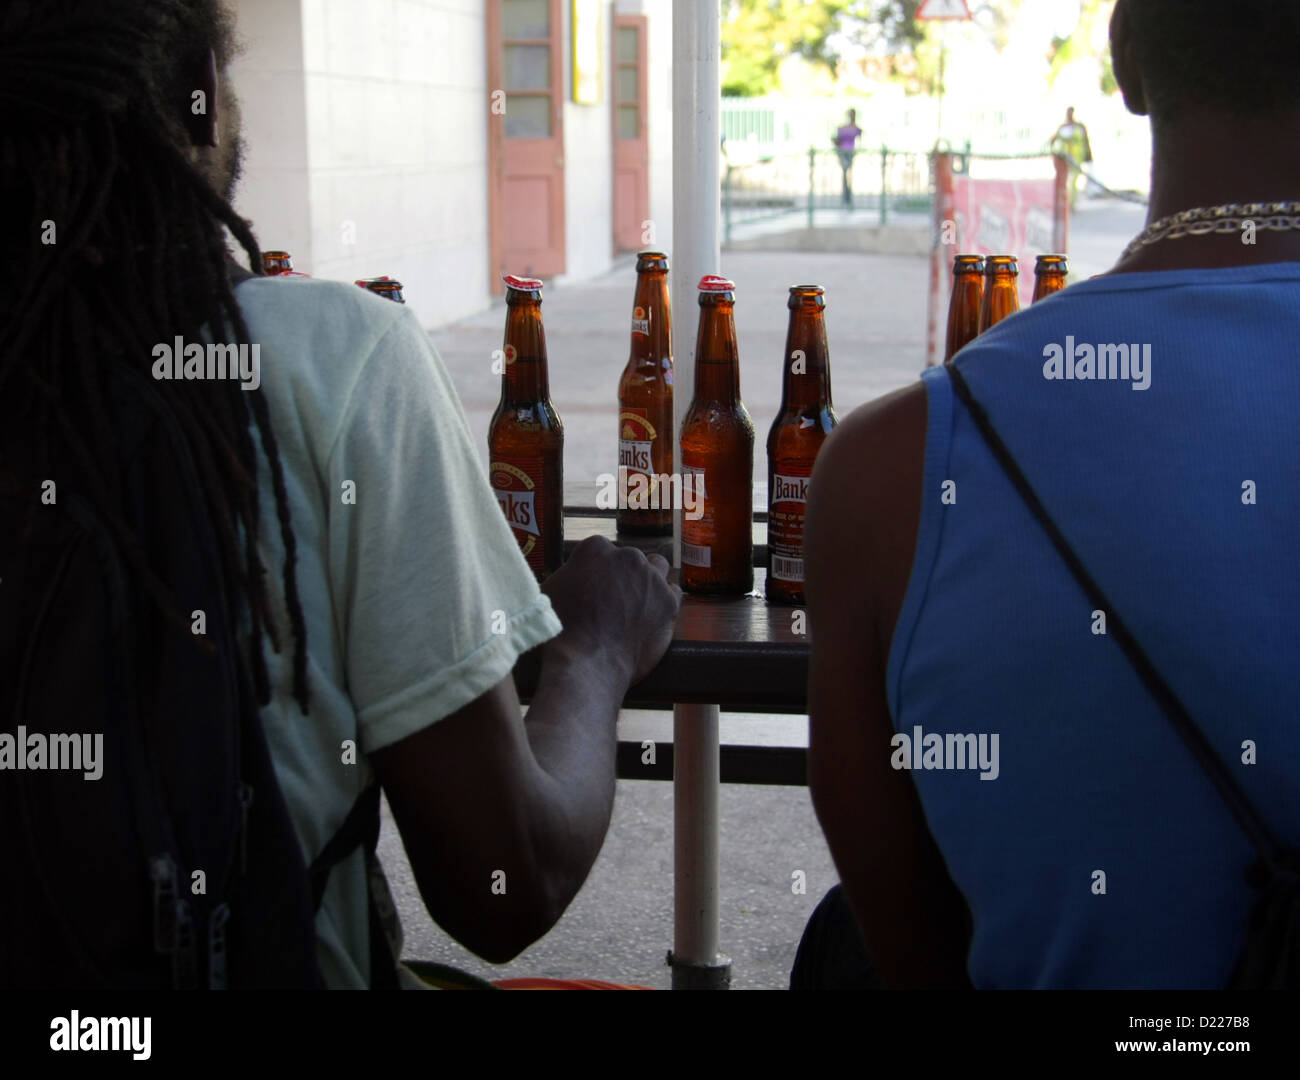 table full of Banks beer at a bar in Bridgetown Barbados - Stock Image